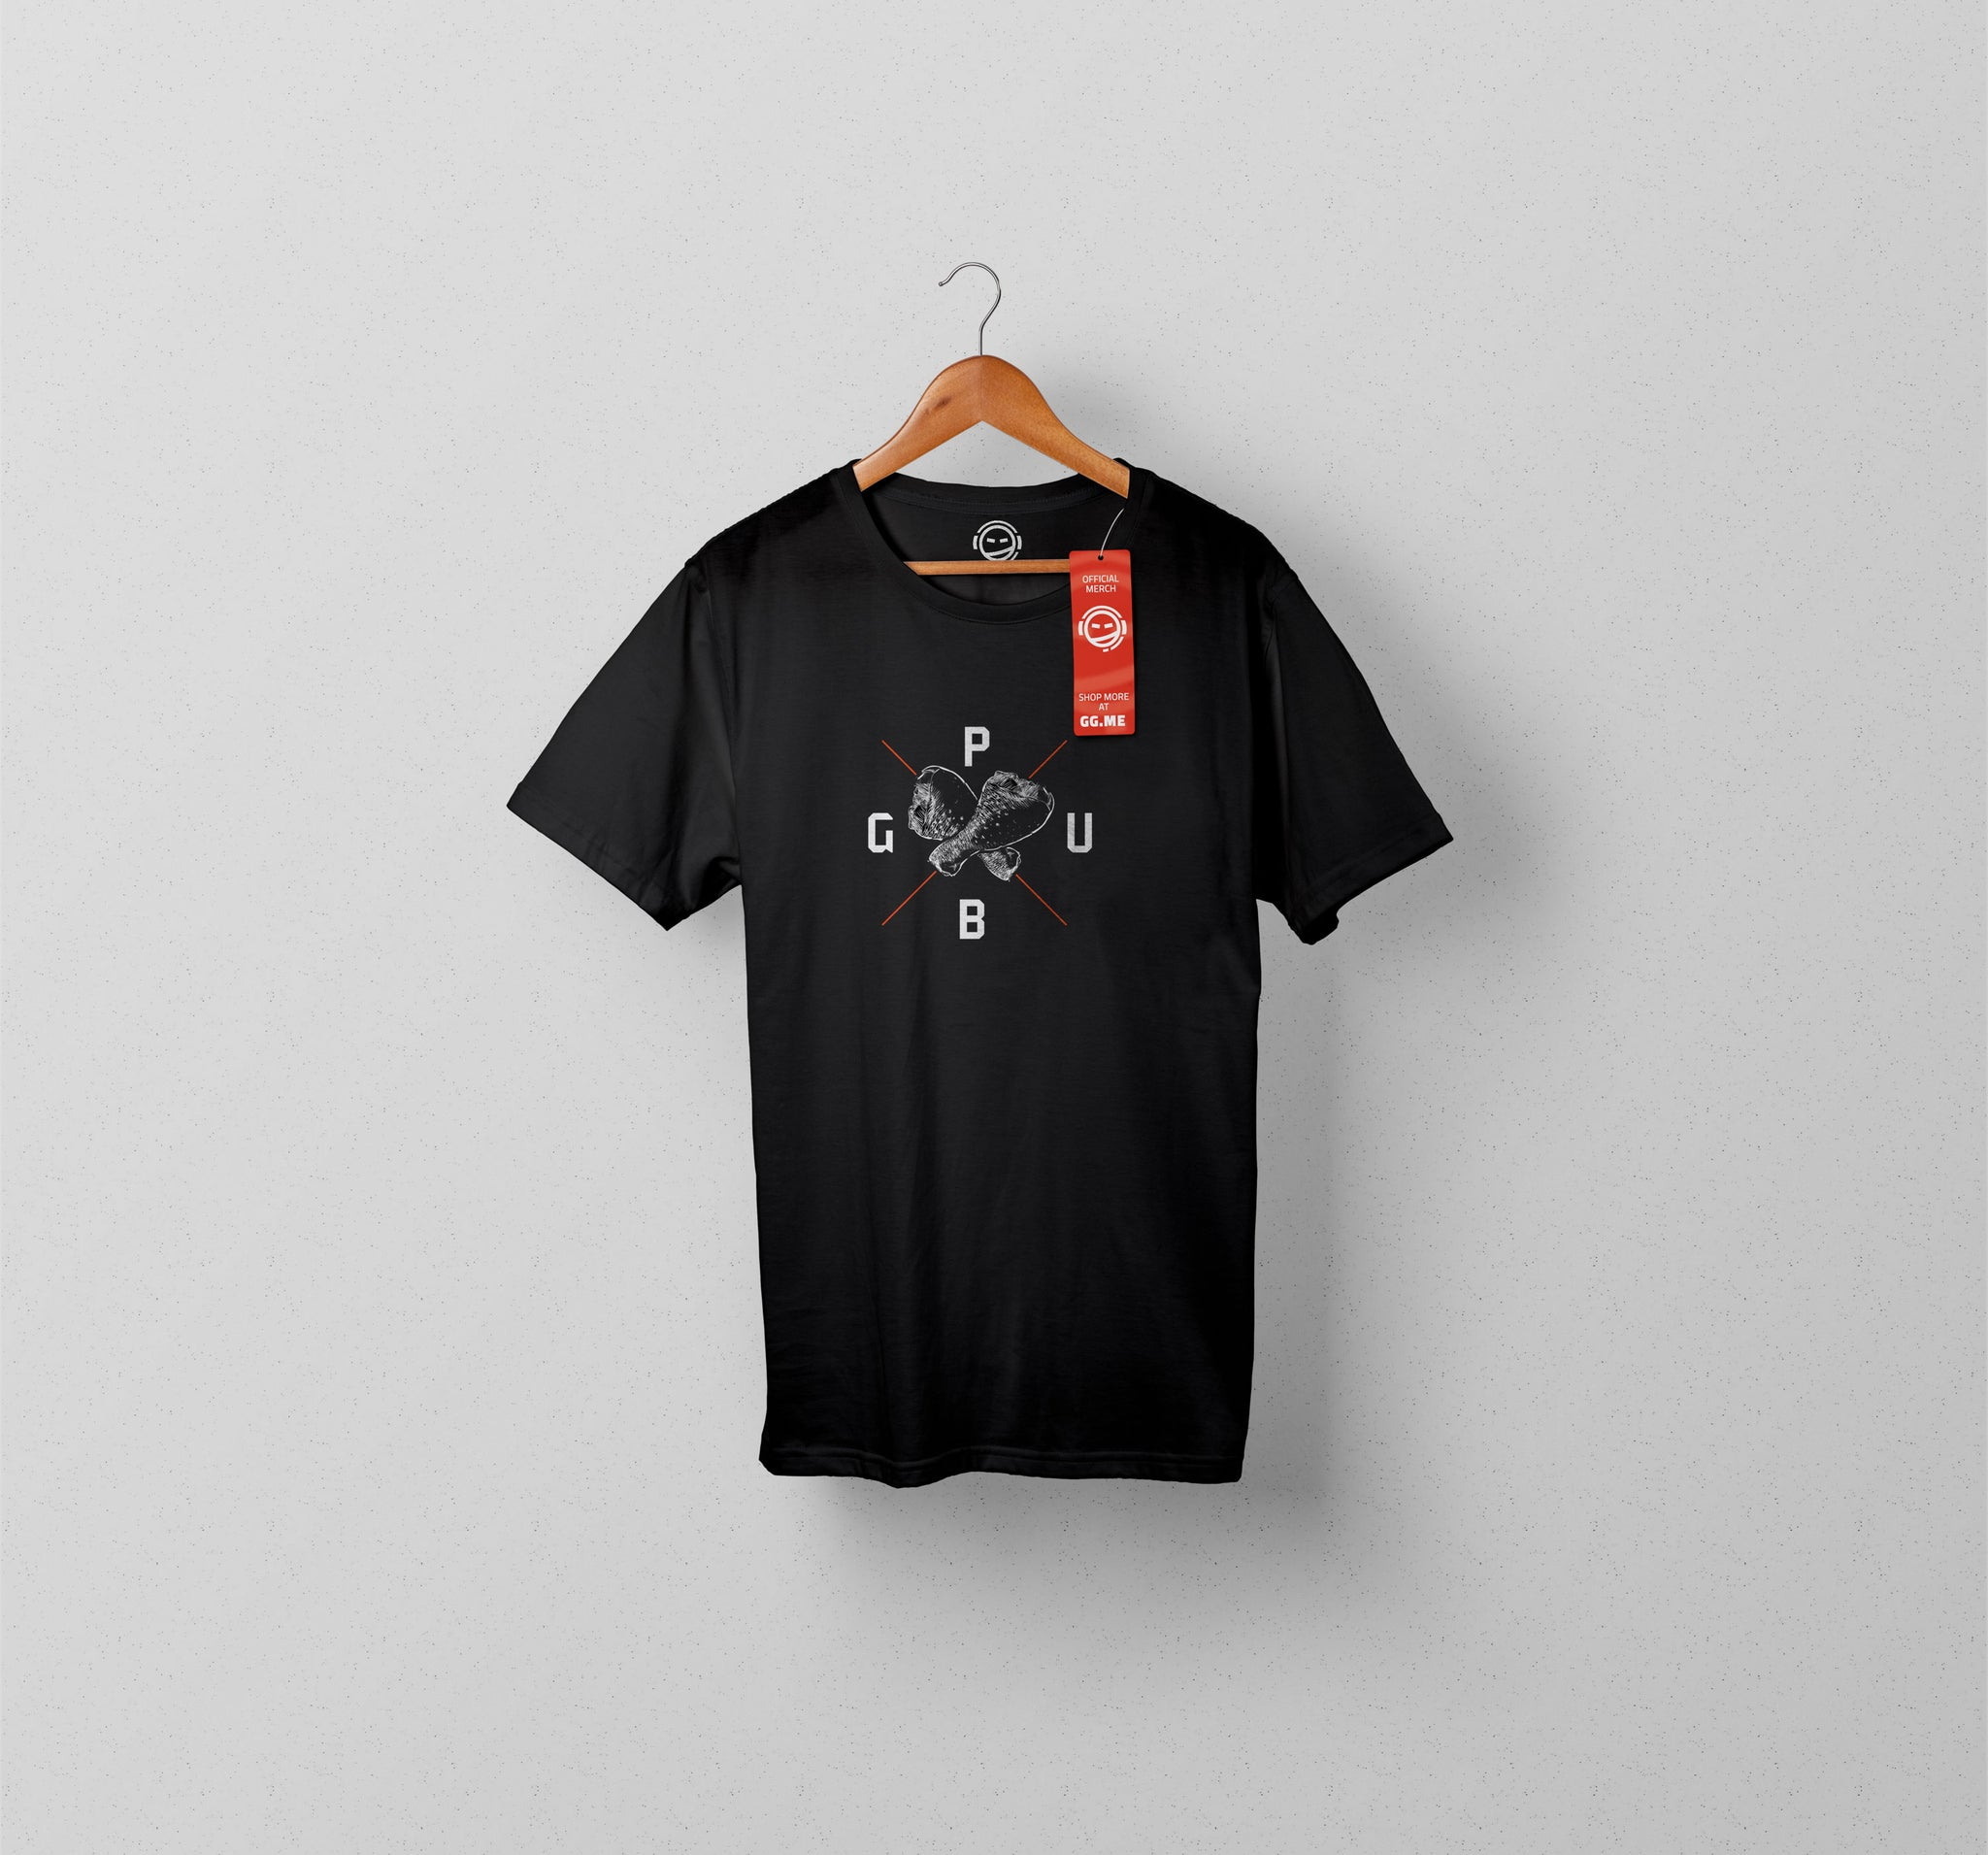 PUBG Chicken Logo T-shirt